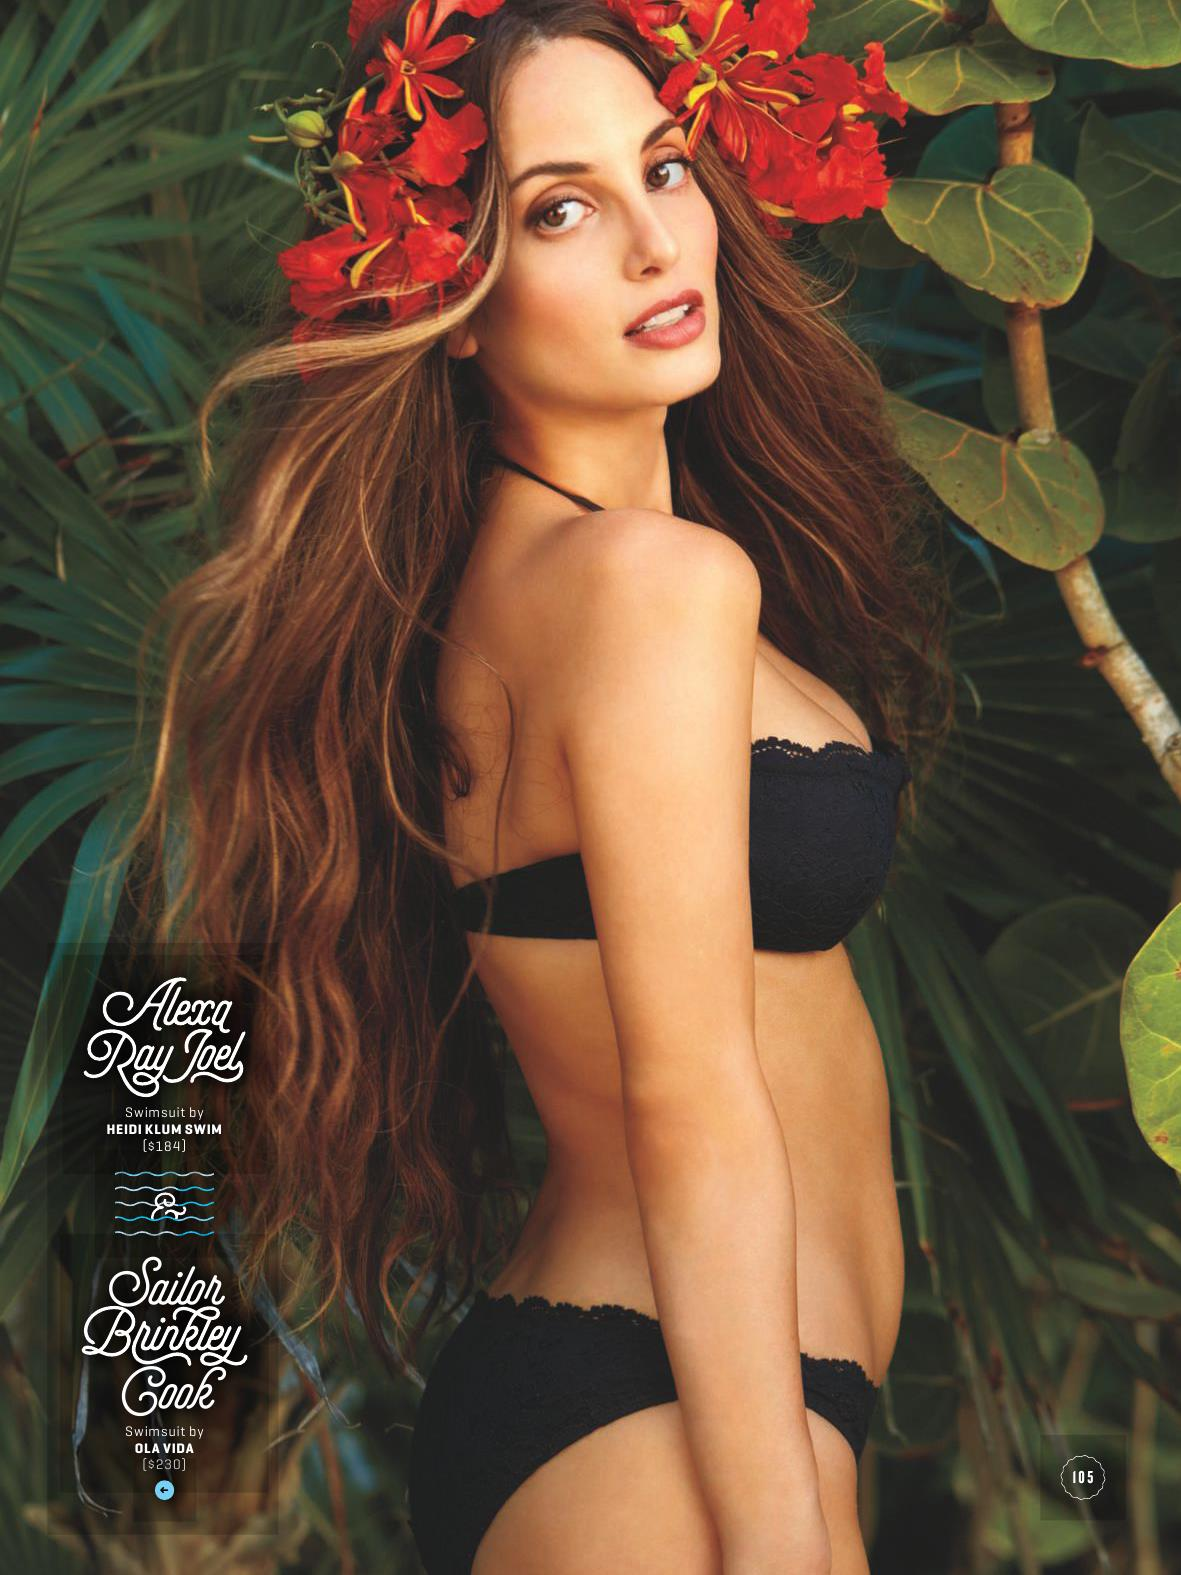 Alexa Ray Joel for Sports Illustrated Swimsuit Edition 2017